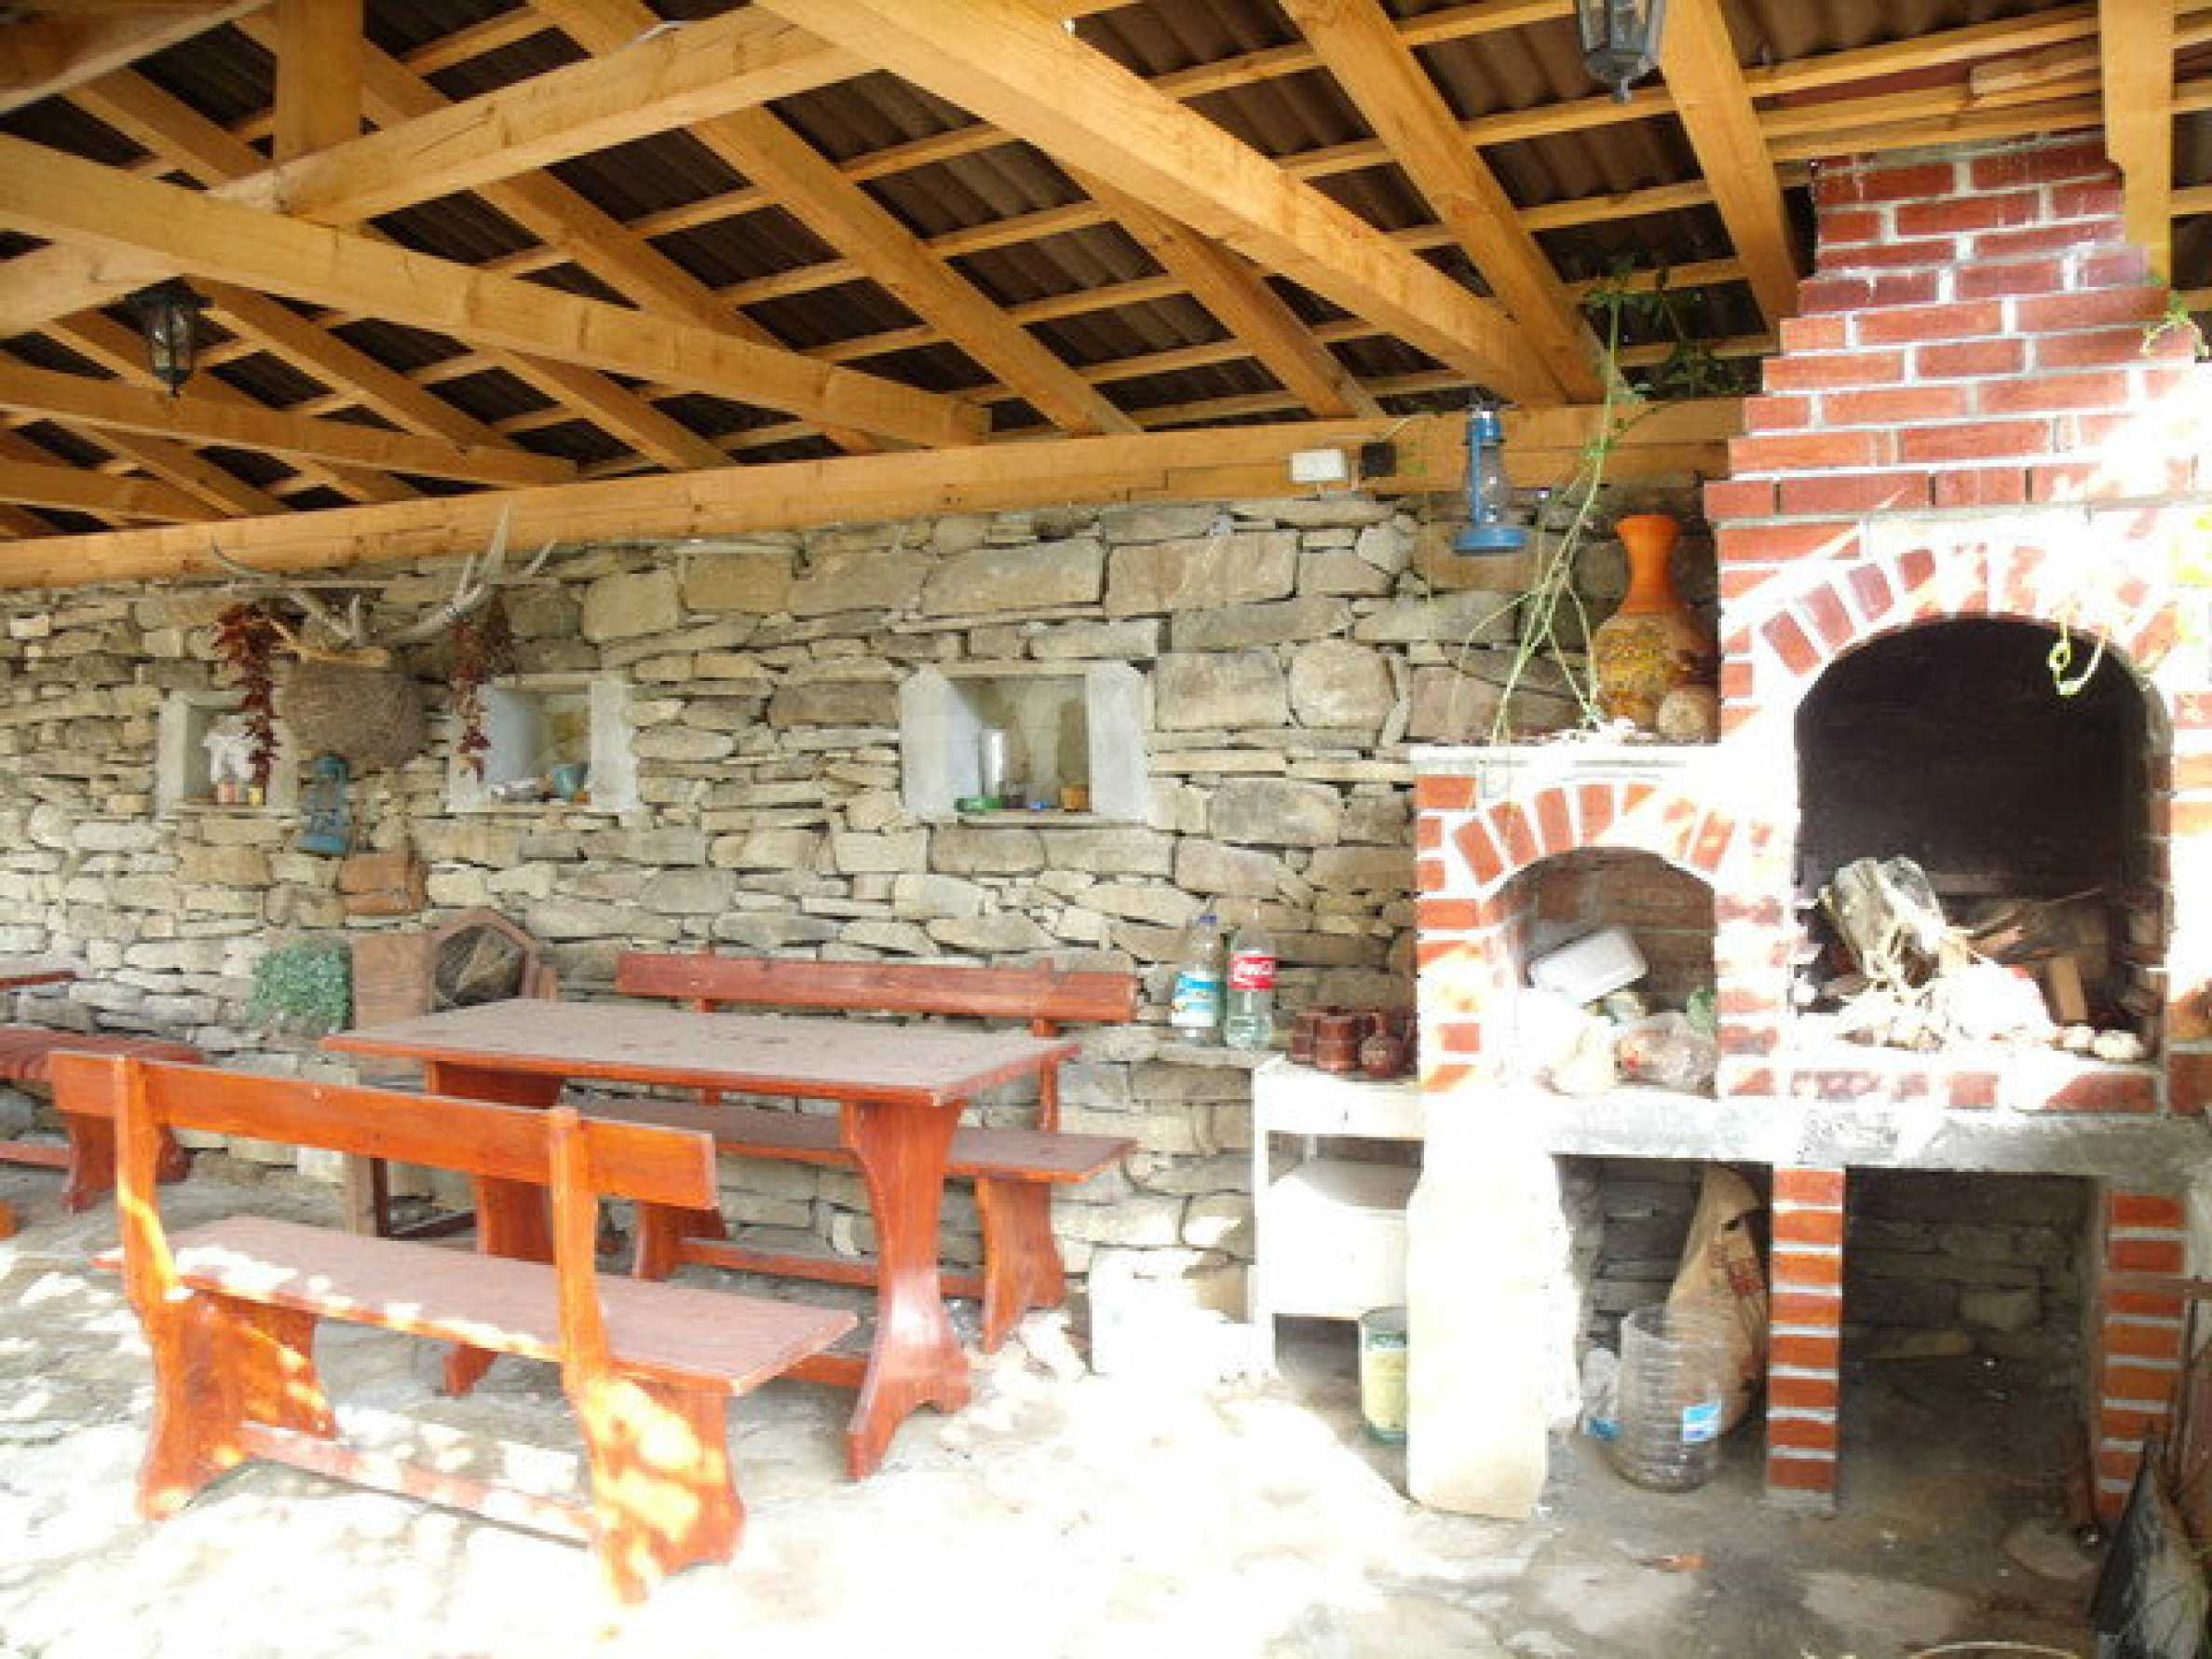 House in a small town, 15 km. from the old capital of Veliko Tarnovo 25